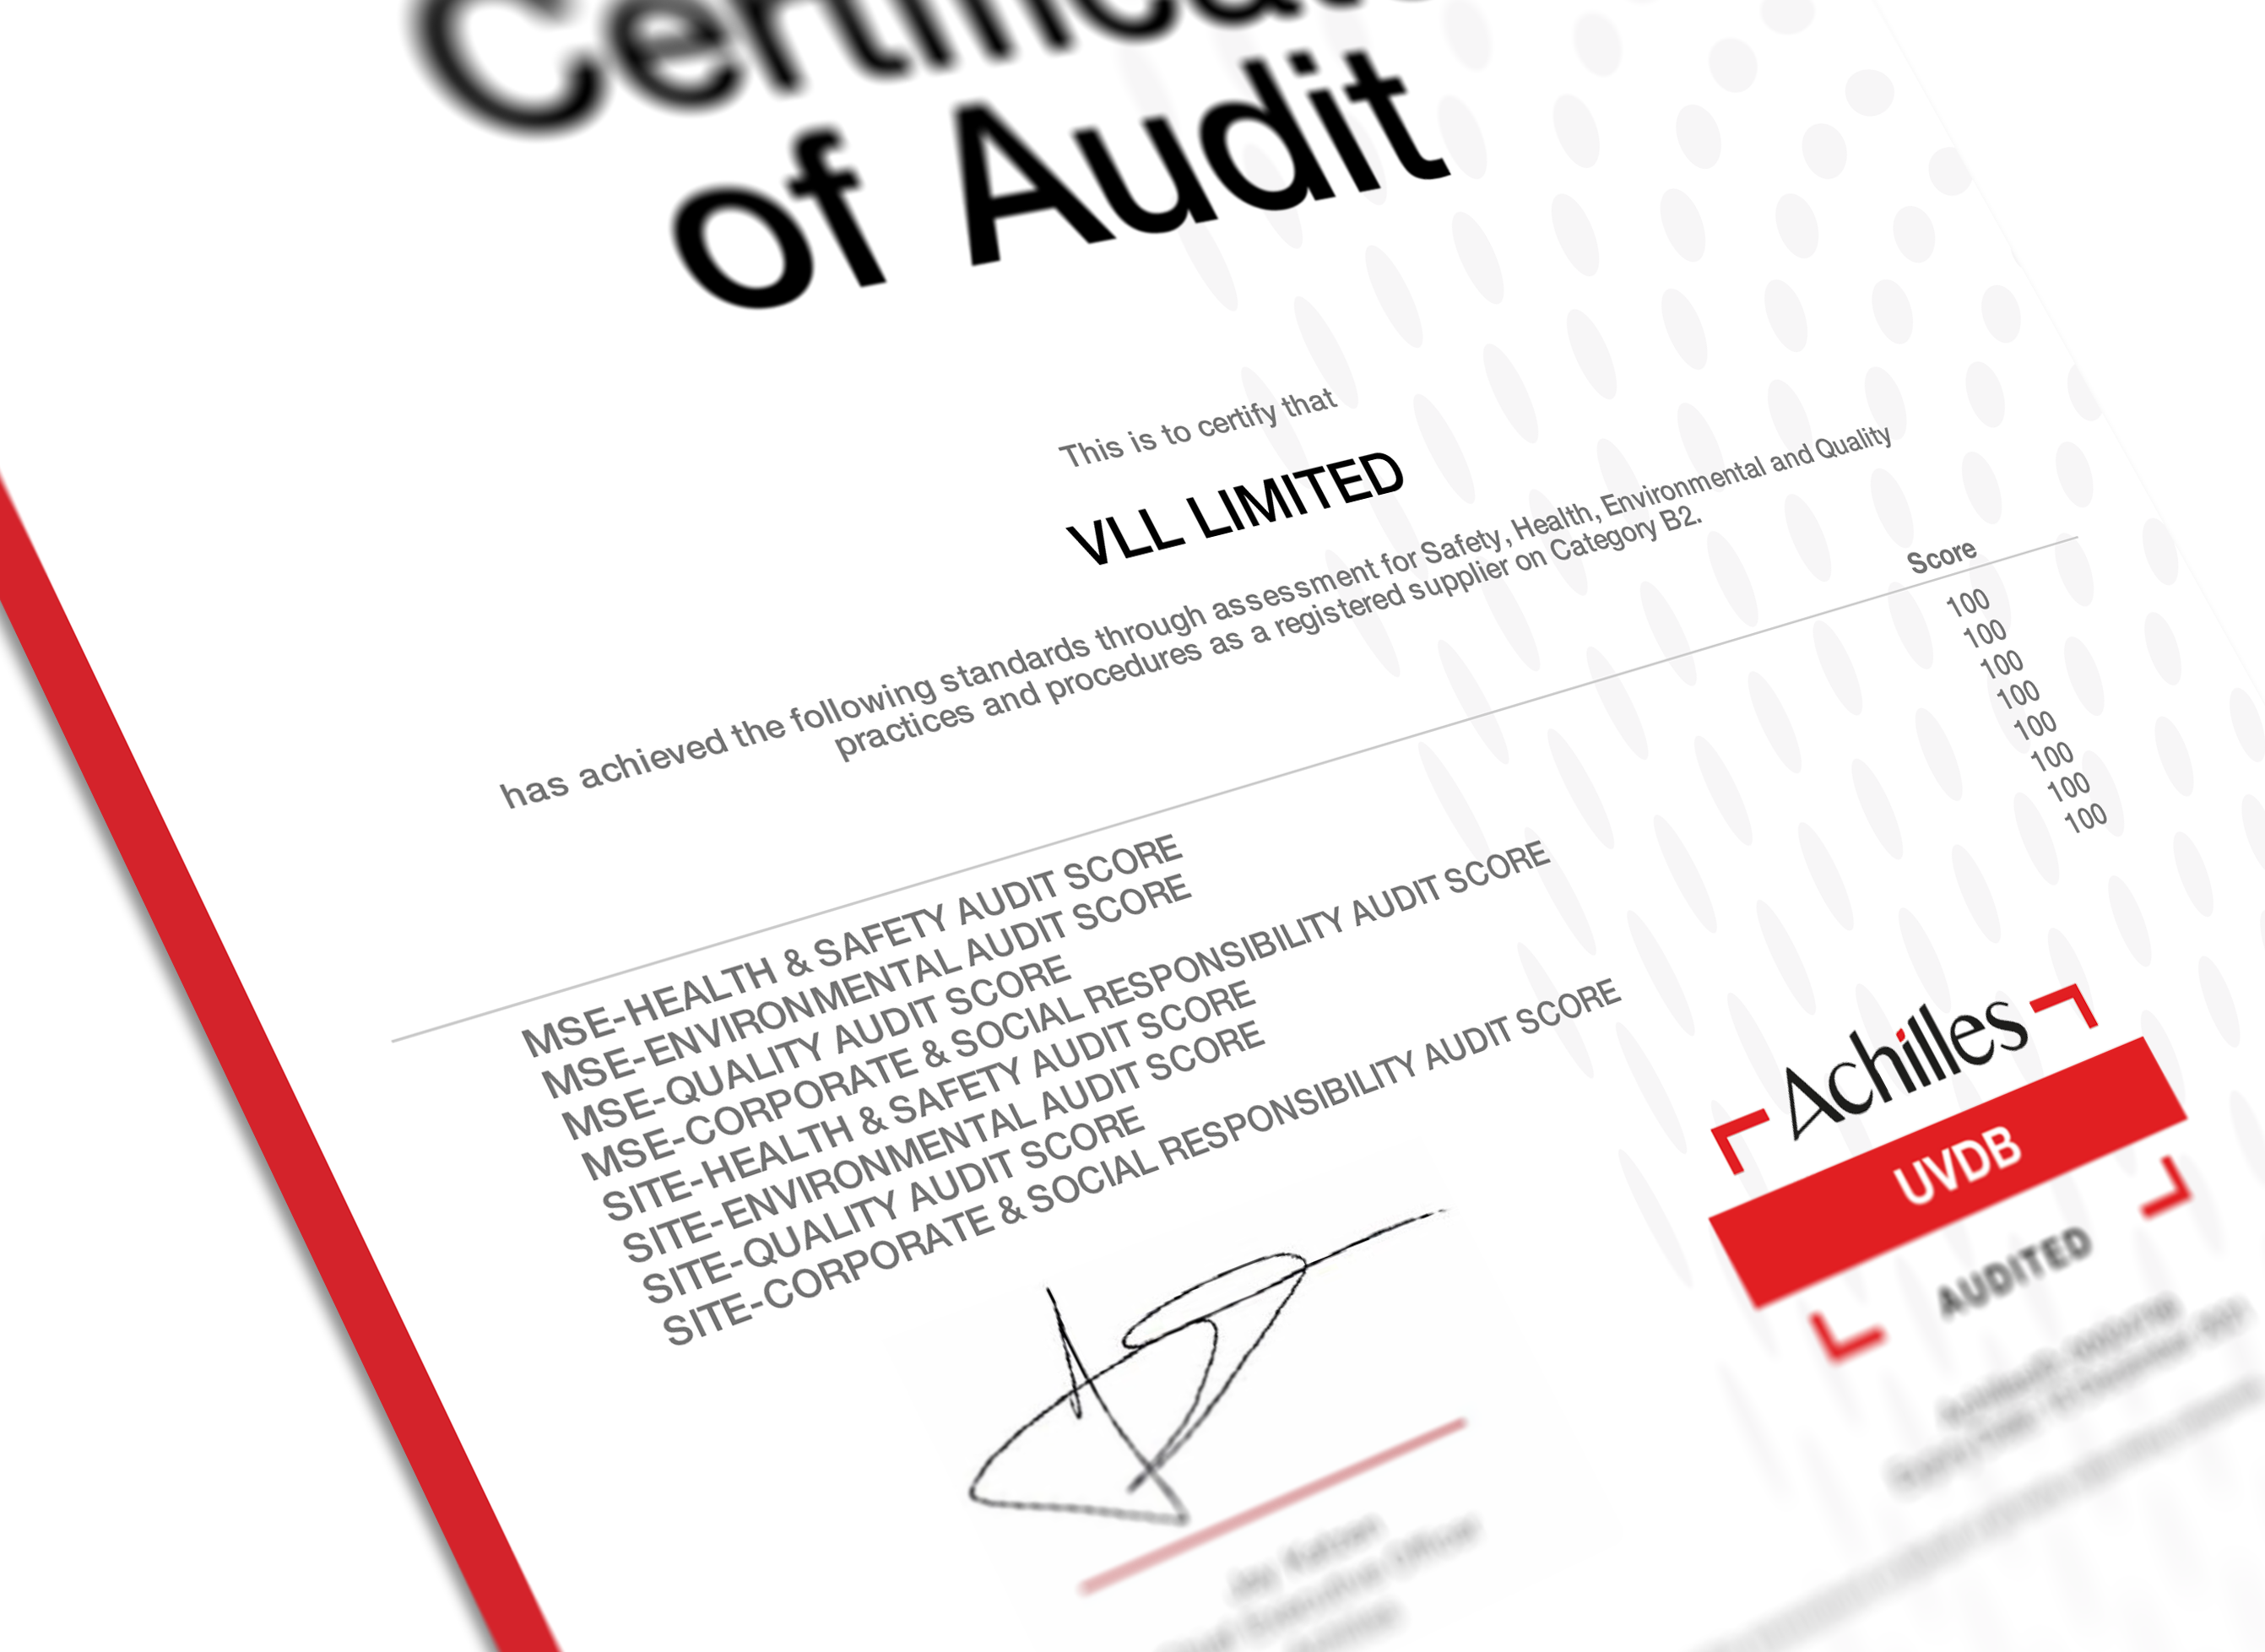 100% from Achilles audit